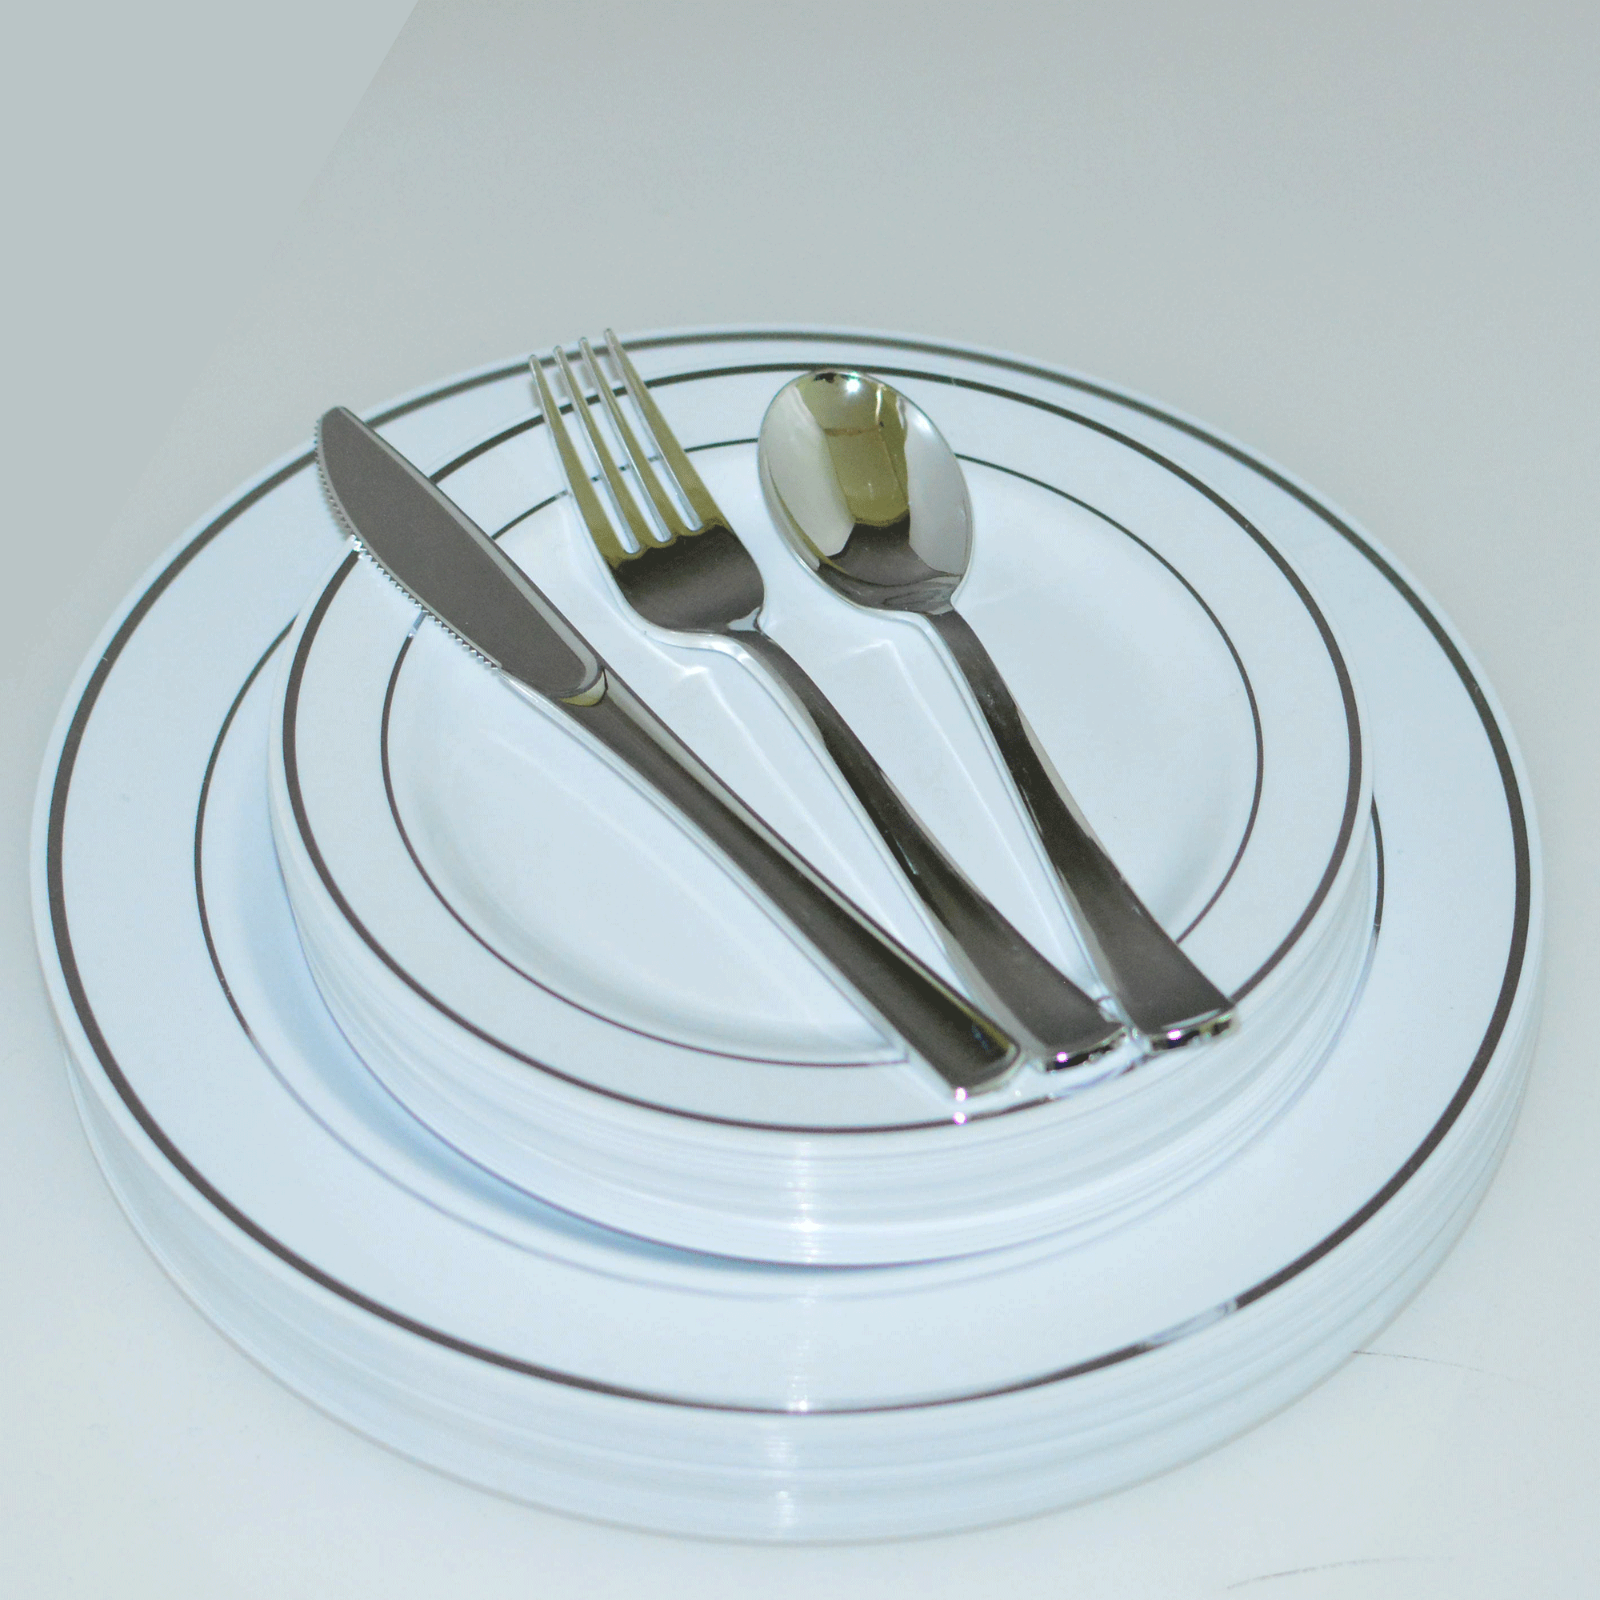 Dinner/ Wedding Disposable Plastic Plates & silverware silve